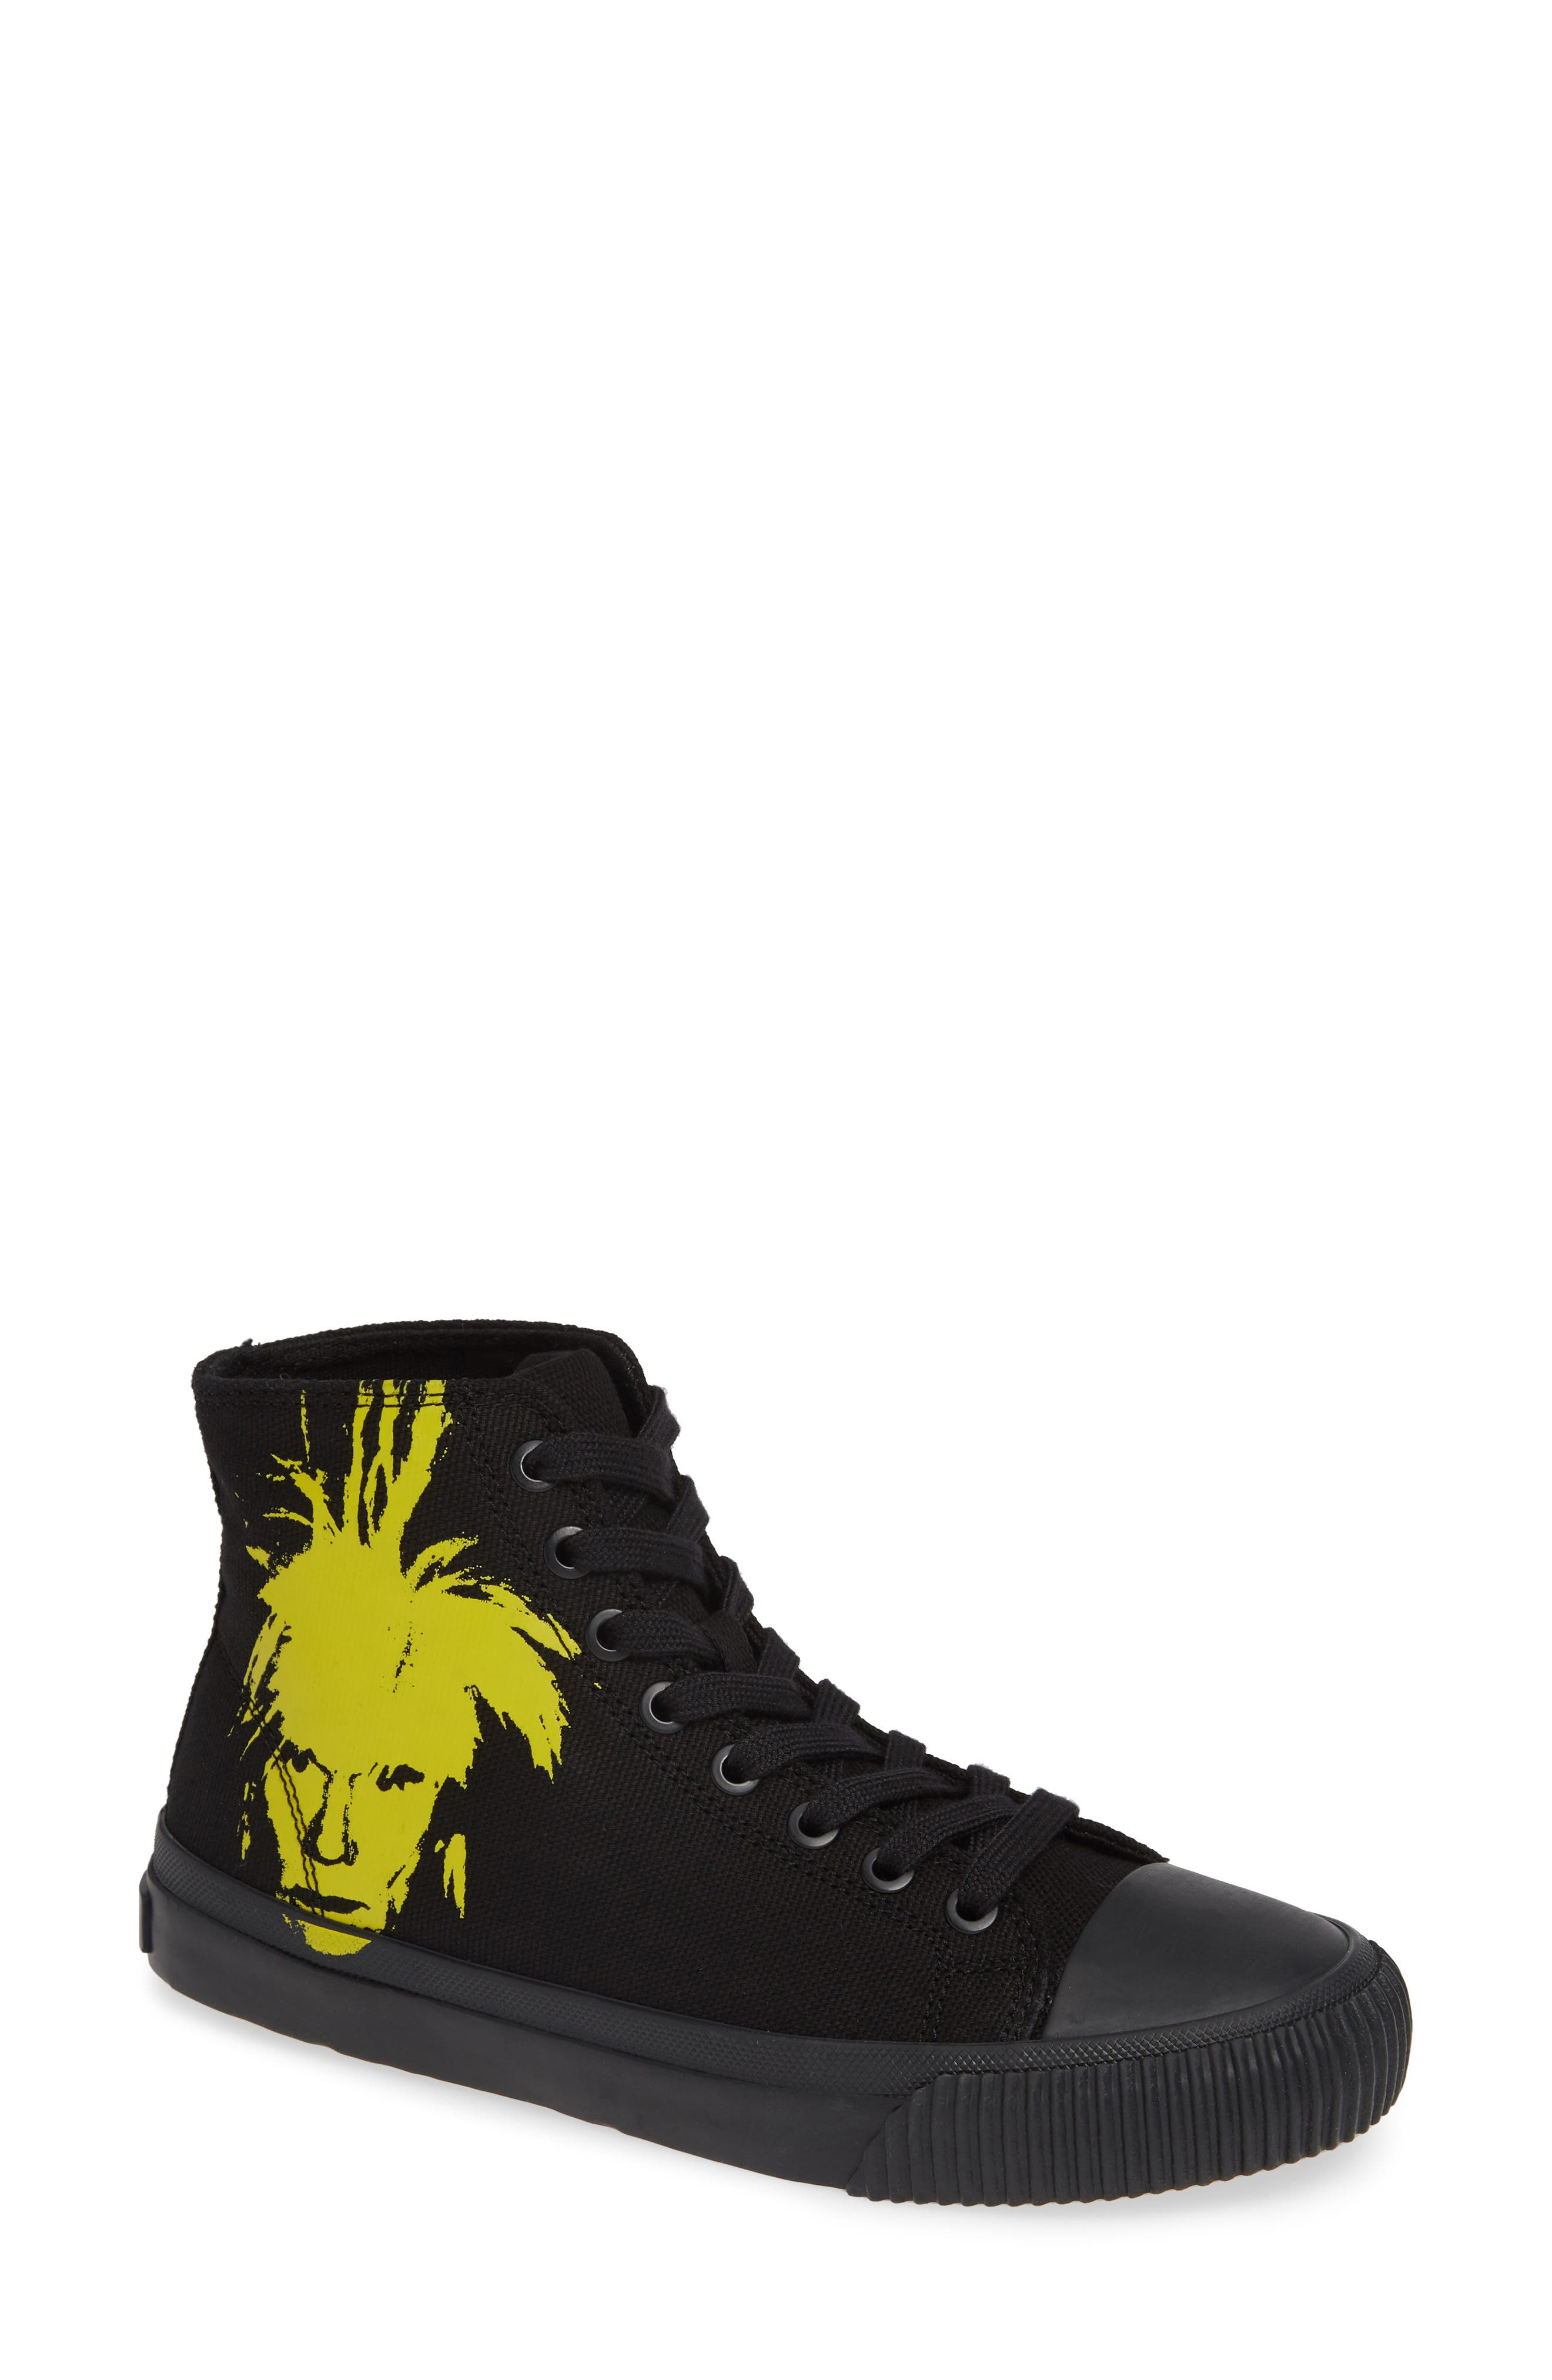 Iconica High Top Sneaker,                             Main thumbnail 1, color,                             001